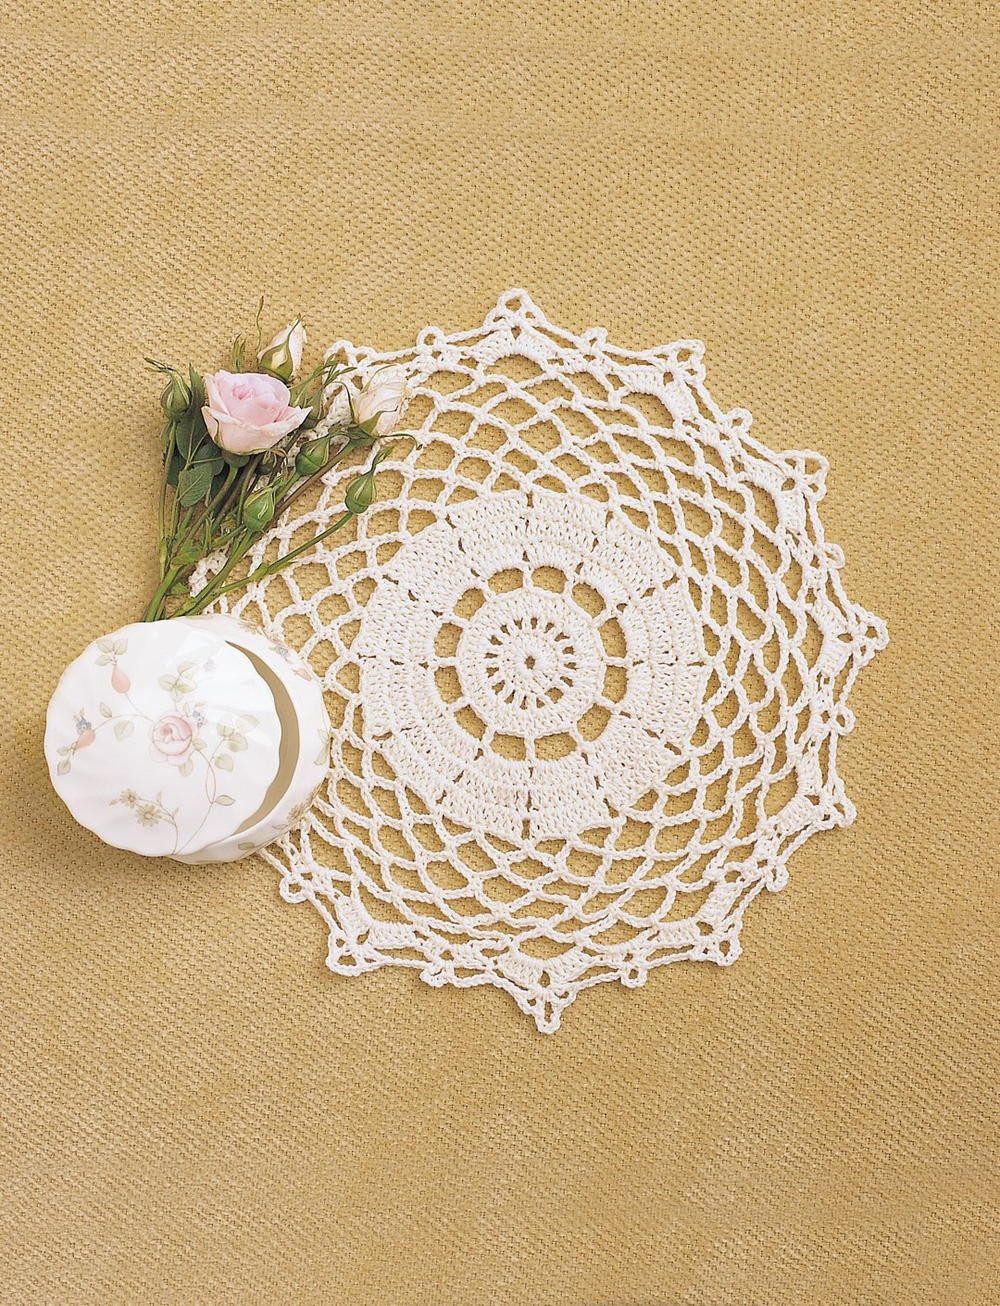 Free Crochet Doily Patterns for Beginners Luxury Pretty Doily Crochet Pattern Of Wonderful 50 Models Free Crochet Doily Patterns for Beginners